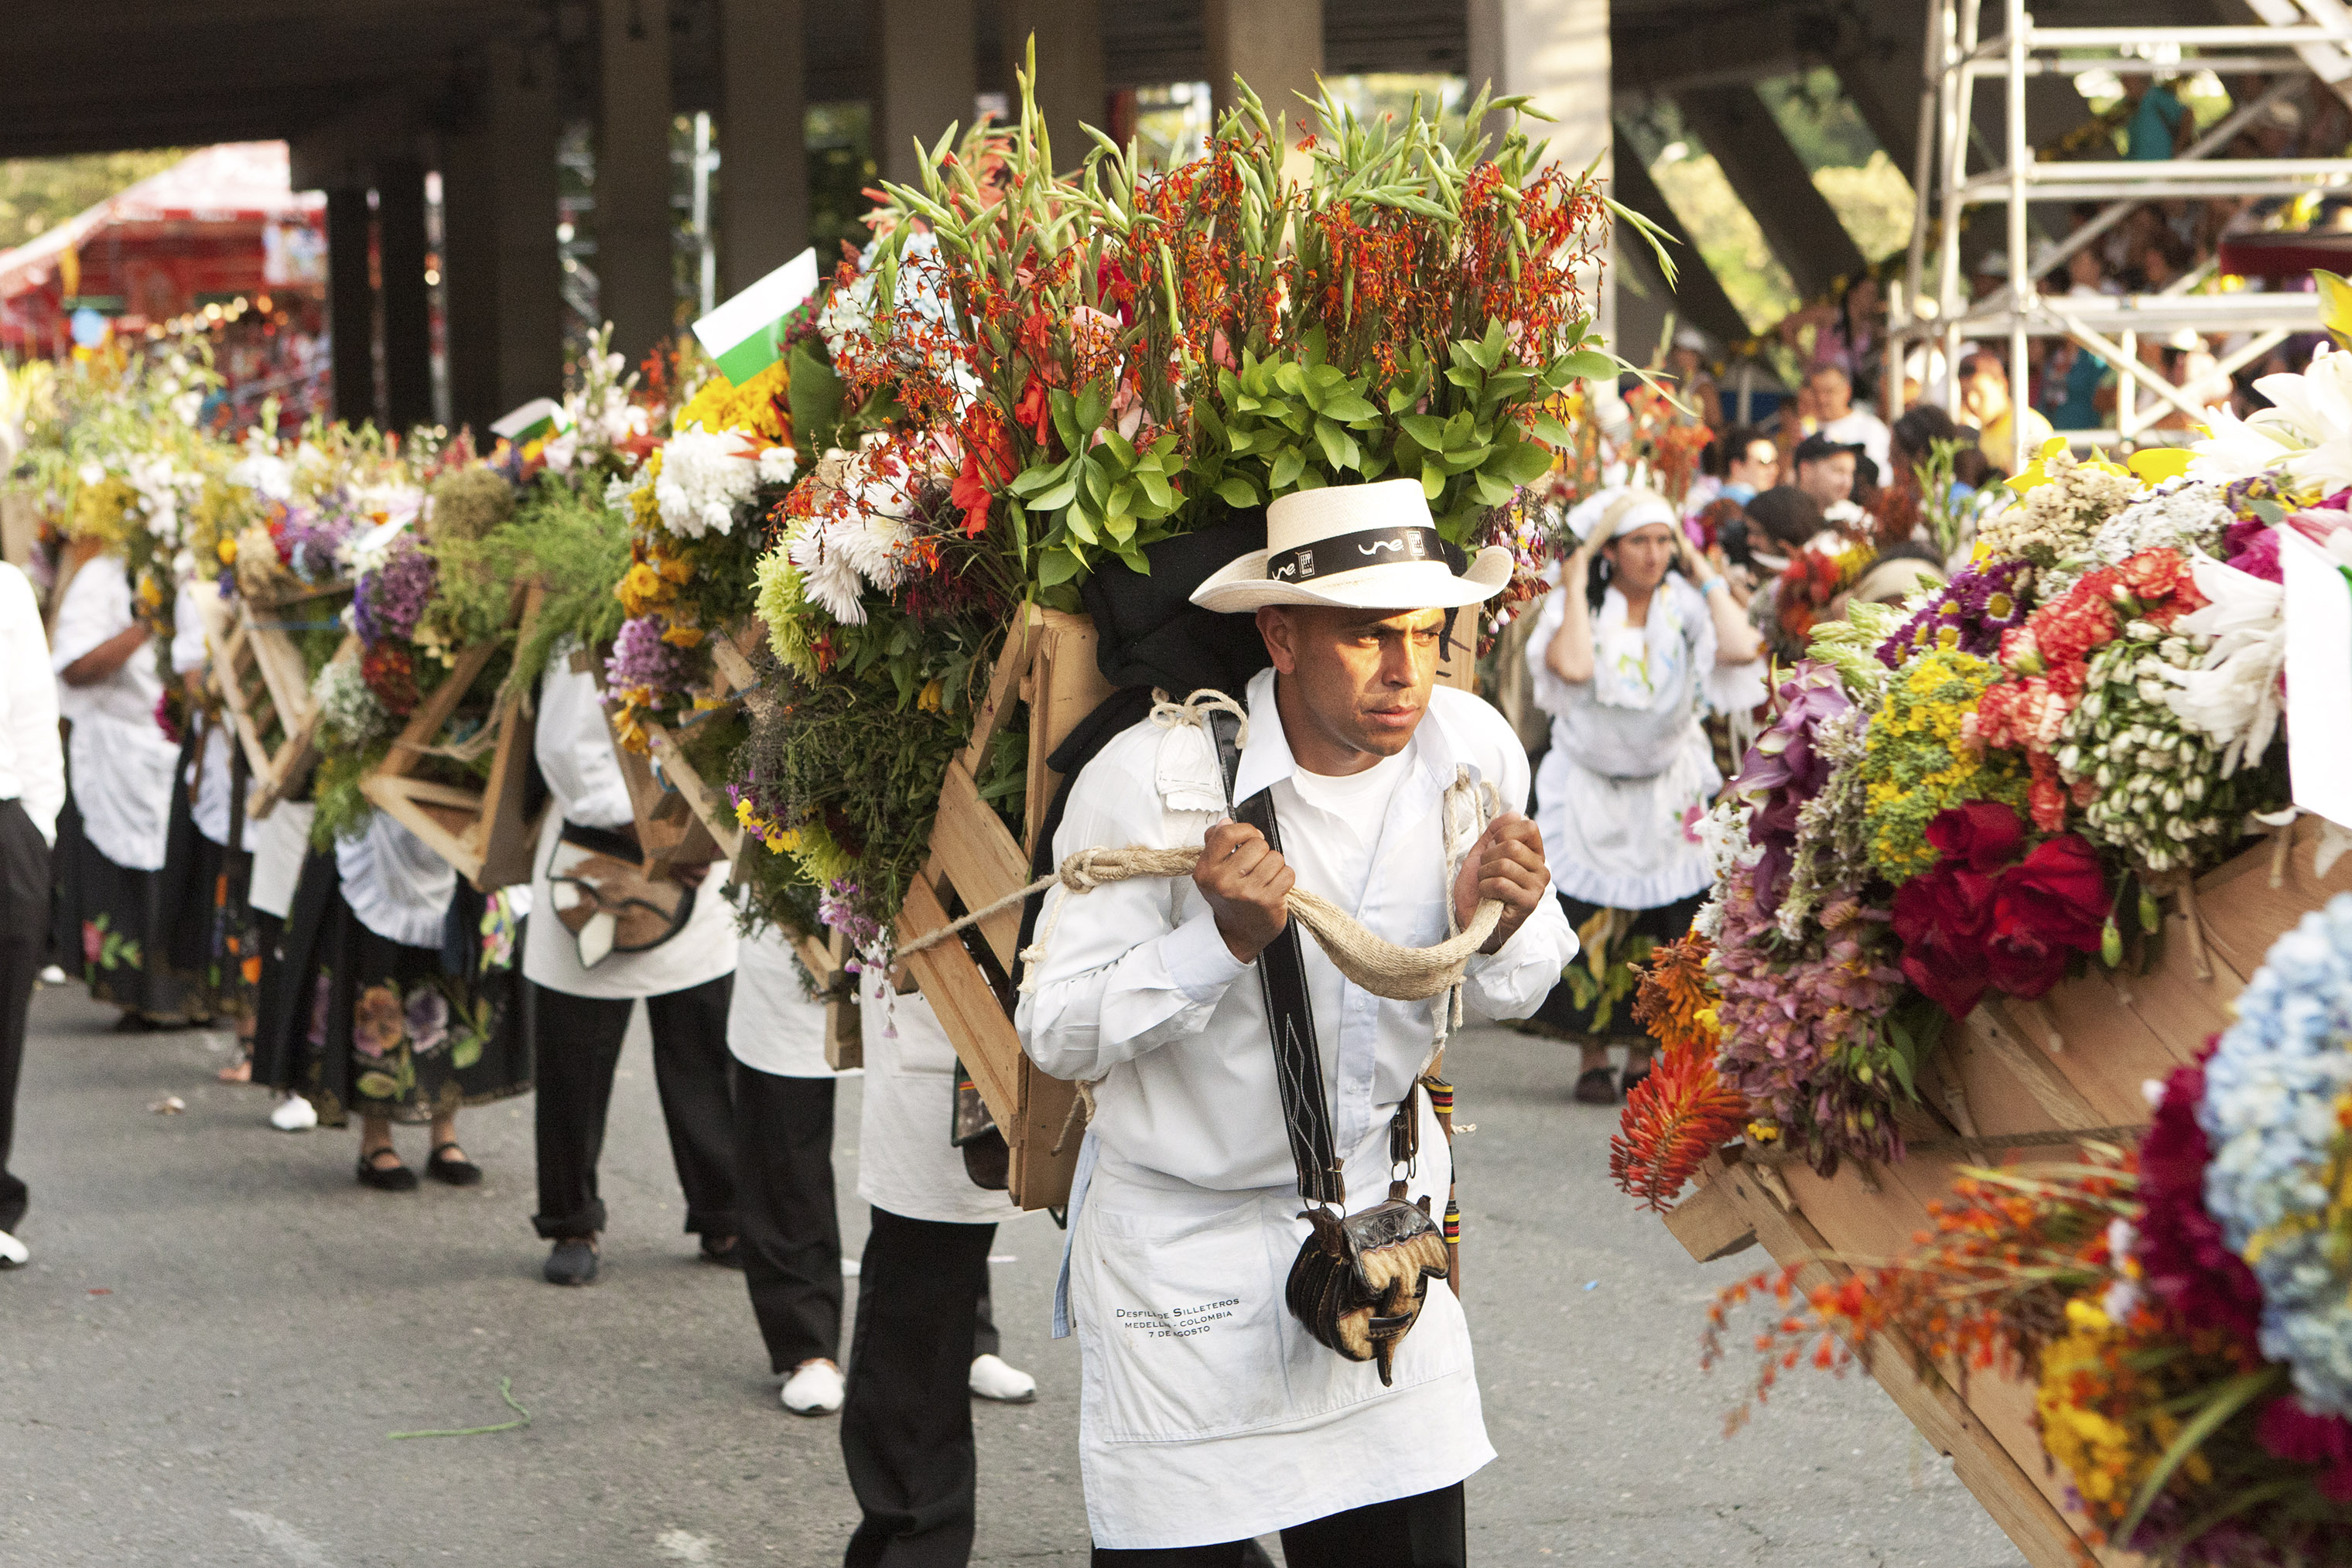 The Festival of the Flowers takes place each August in Medellín